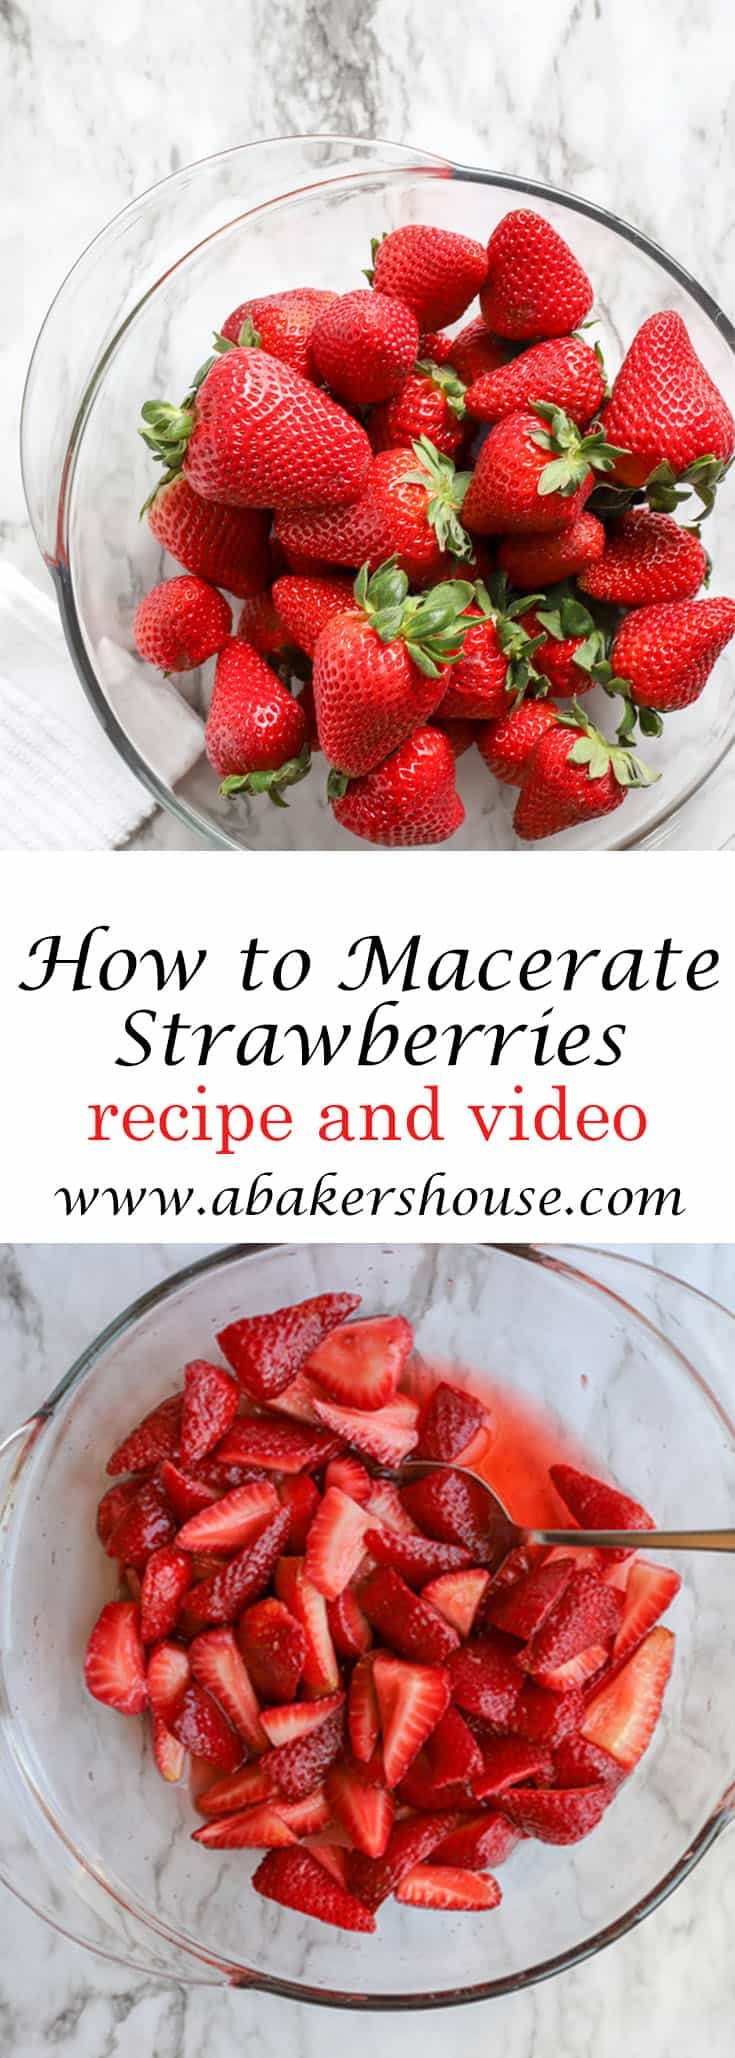 Learning how to make macerated strawberries barely requires a recipe. You simply add sugar (or alcohol) and the magic ingredient of time. Making macerated strawberries is a technique that you can use with any type of berry. Use this juicy goodness to top pancakes, shortcakes, ice cream, pound cake, or trifle. #strawberries #easydessert #summerdessert #redwhiteandblue #fruitdessert #abakershouse